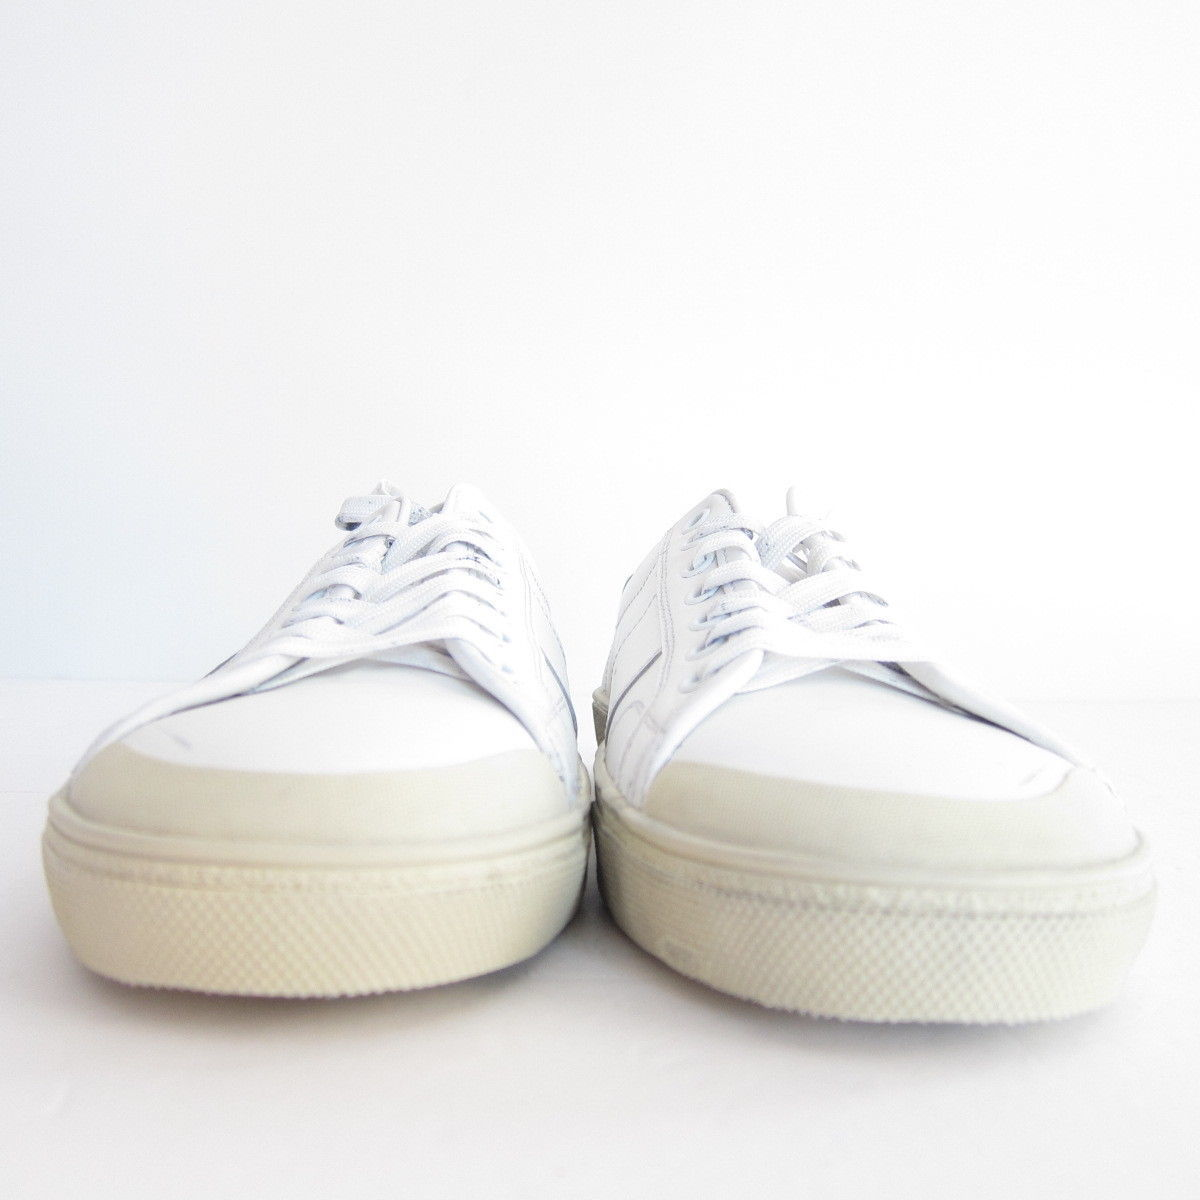 P-4659100 New Saint Laurent Off White Women's Leather Sneaker US 10 Marked 40